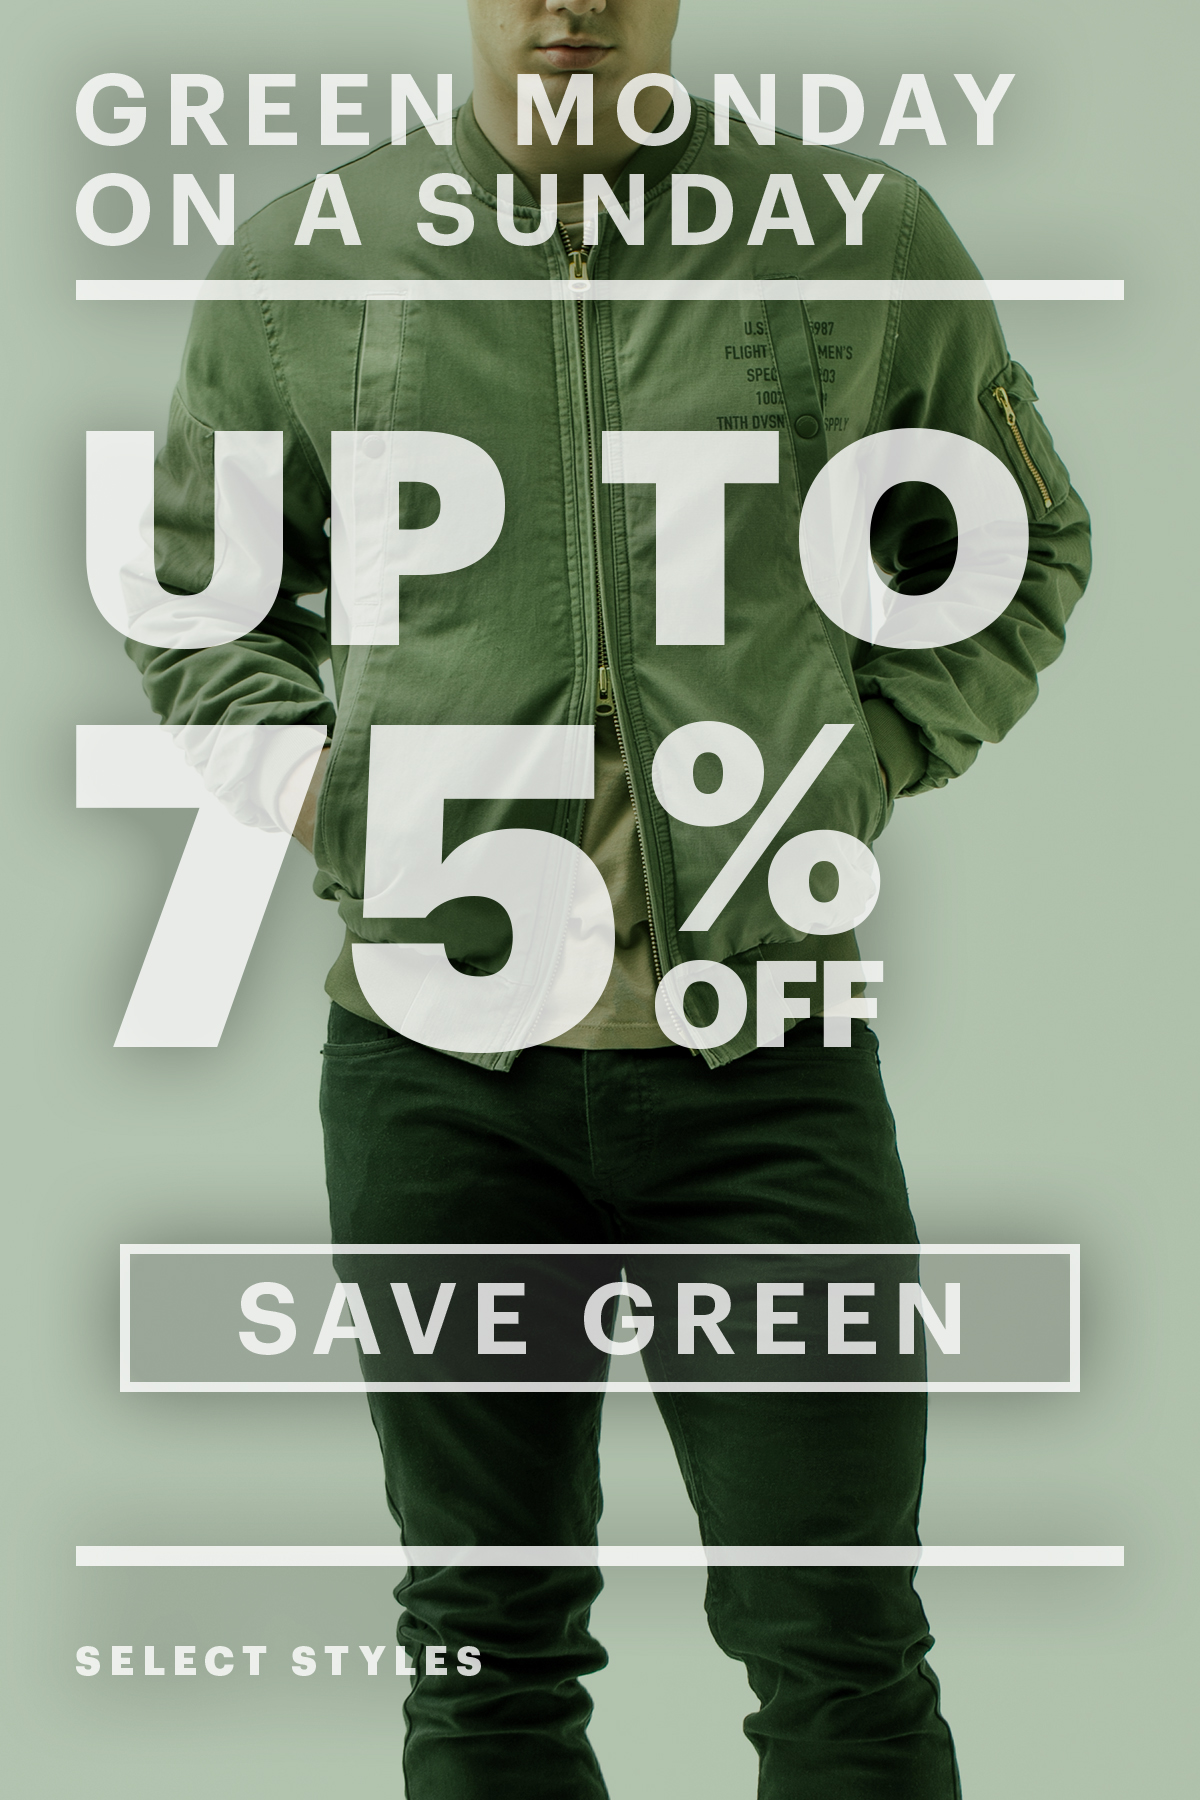 Up To 75% Off! Green Monday On A Sunday